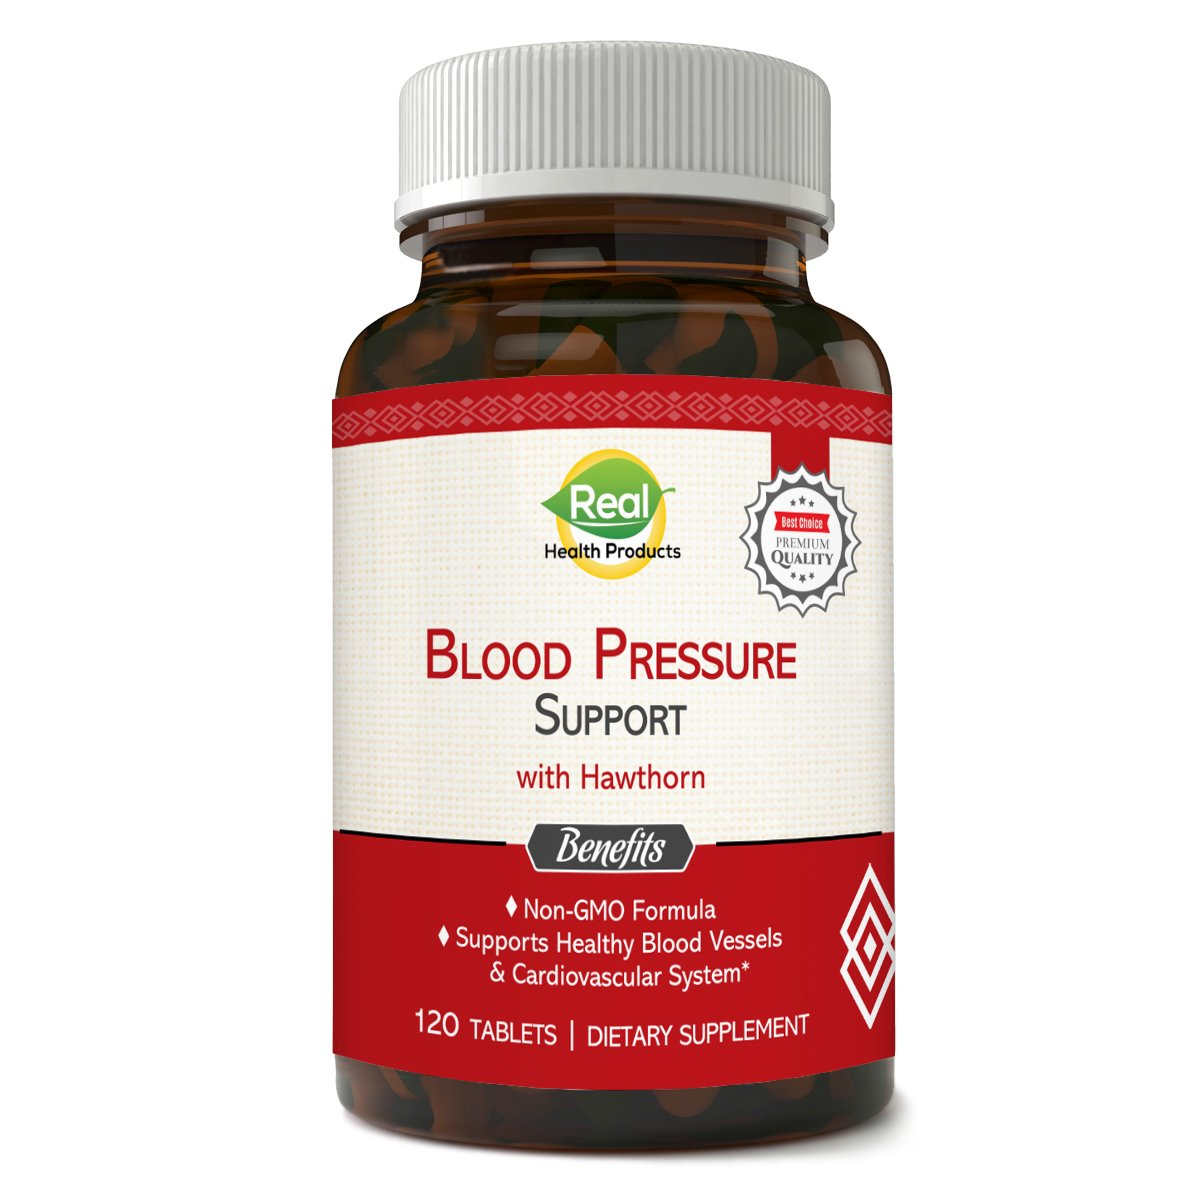 Best Blood Vessel Support Supplement - Potent Herbs and Vitamins Including Magnesium, Hawthorn Berry & Passion Flower for Stress Reduction, Heart Health and Blood Vessels. 120 Tablets